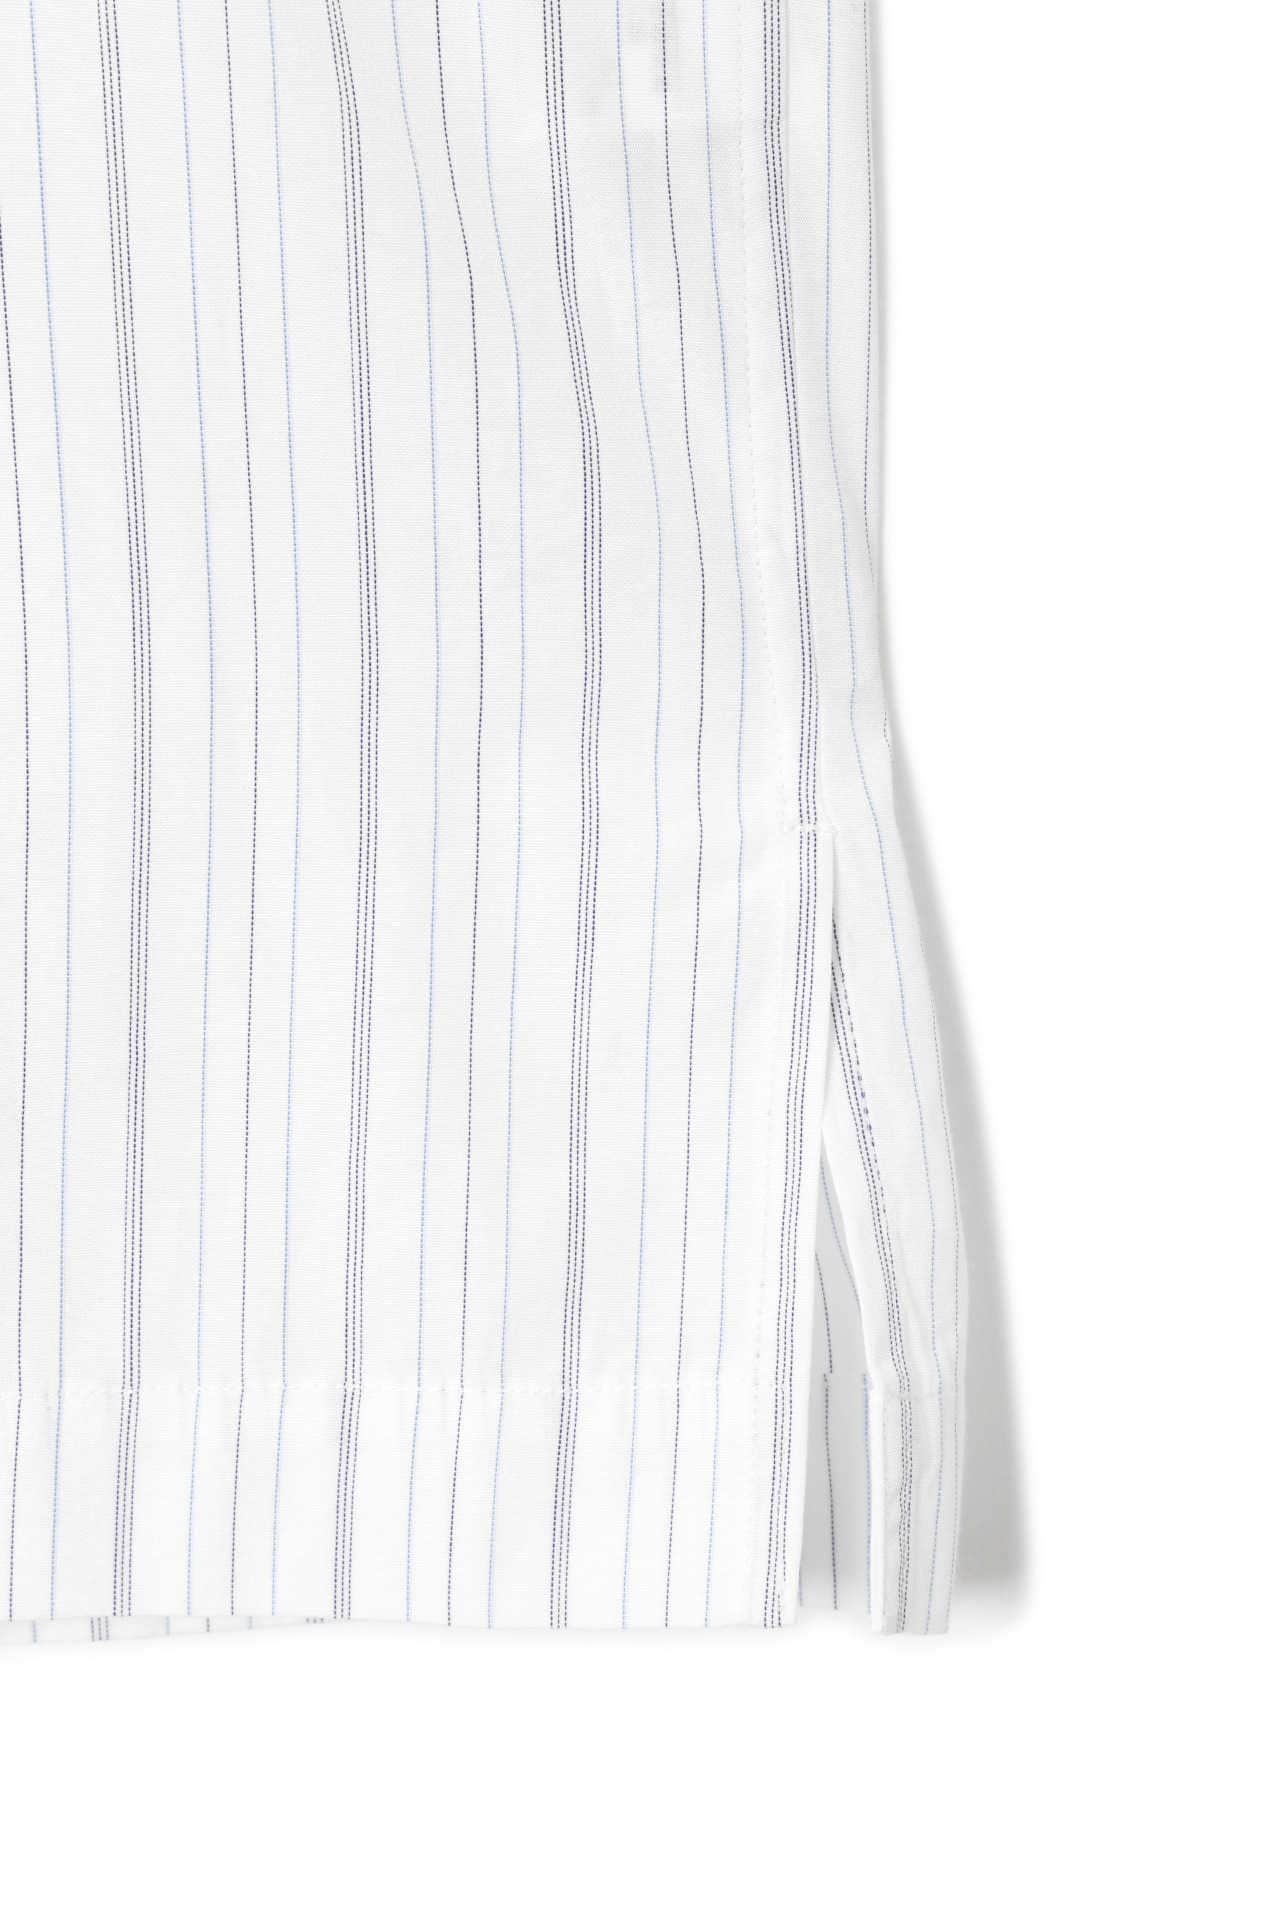 UNEVEN STRIPE COTTON3